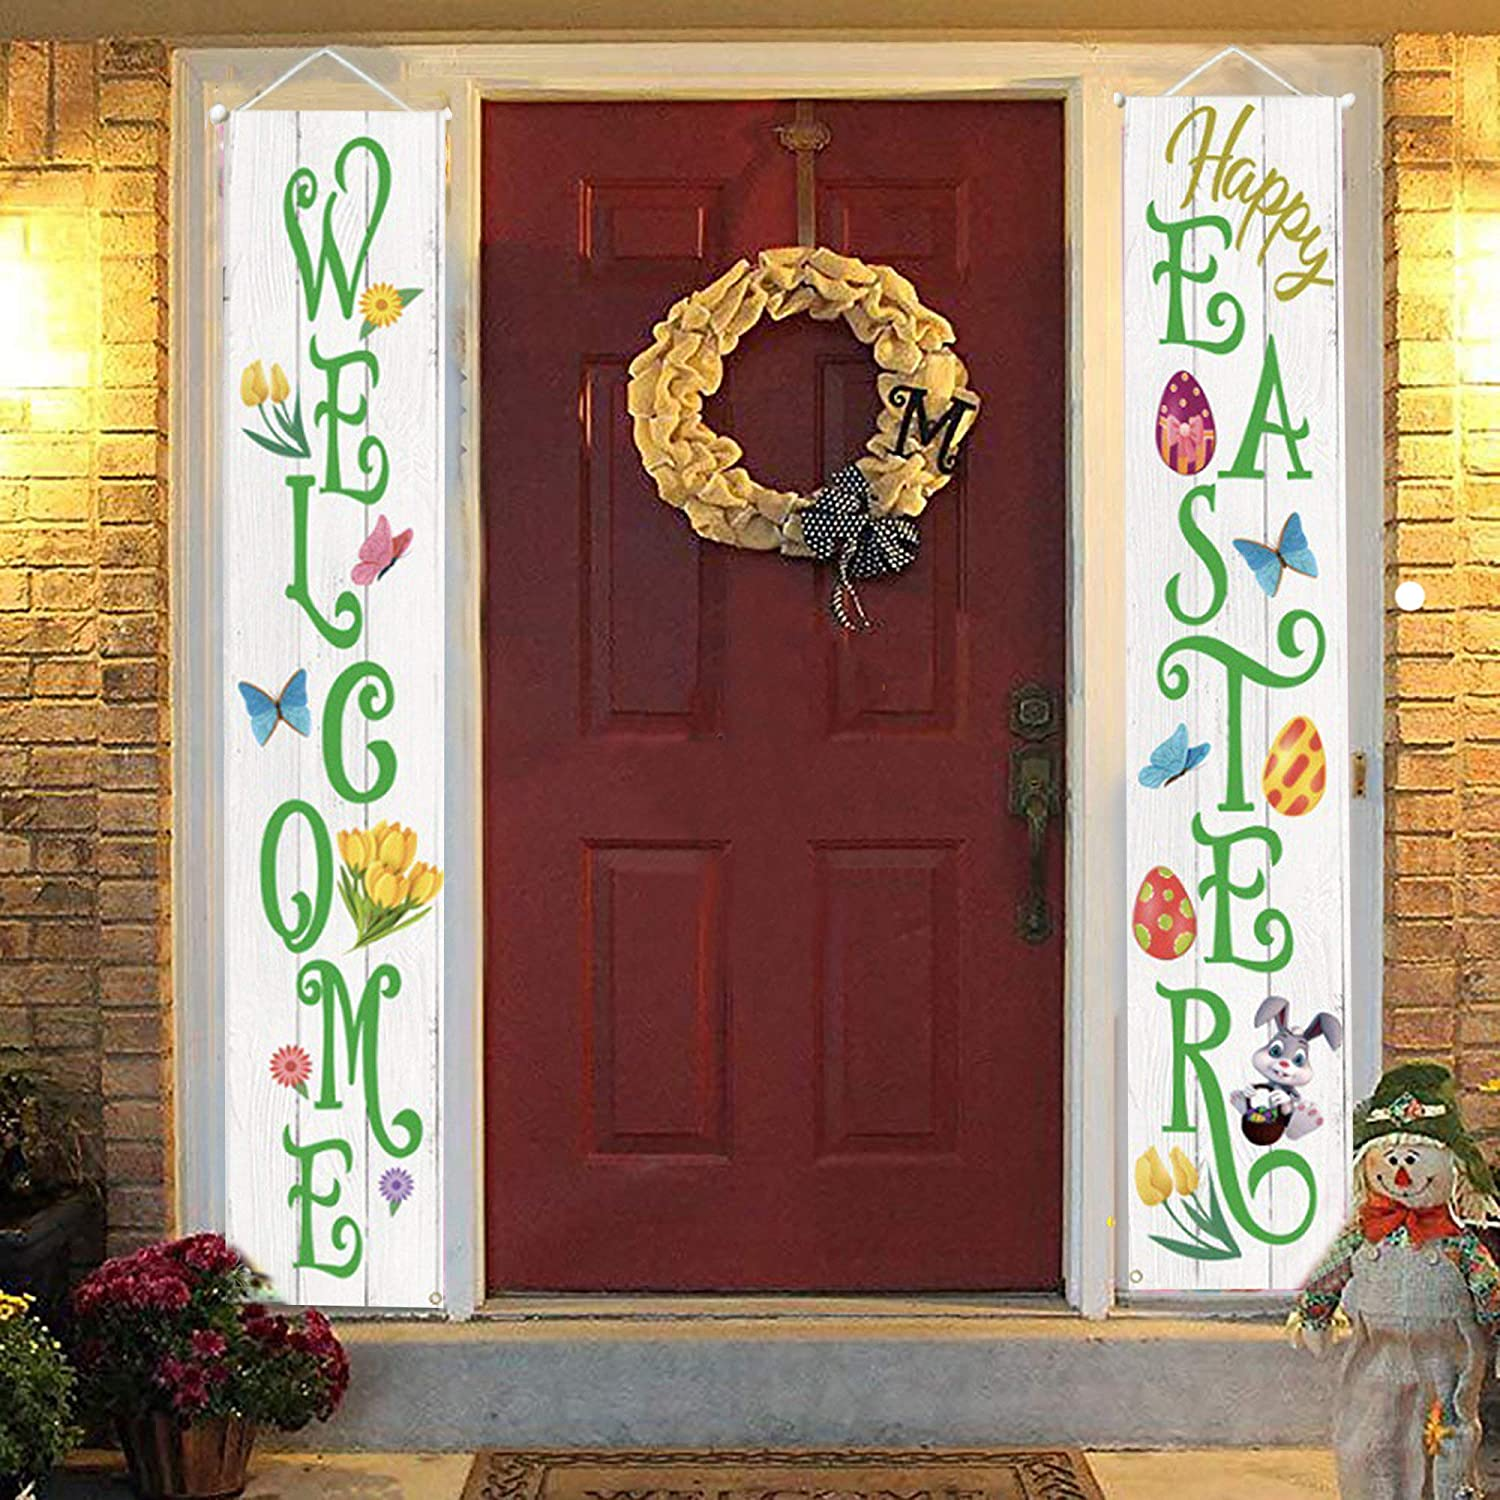 Easter Porch Banners,Front Door Porch Sign Banner,Hanging Welcome Easter Decoration,for Holiday Home Indoor Outdoor Porch Wall Decorations